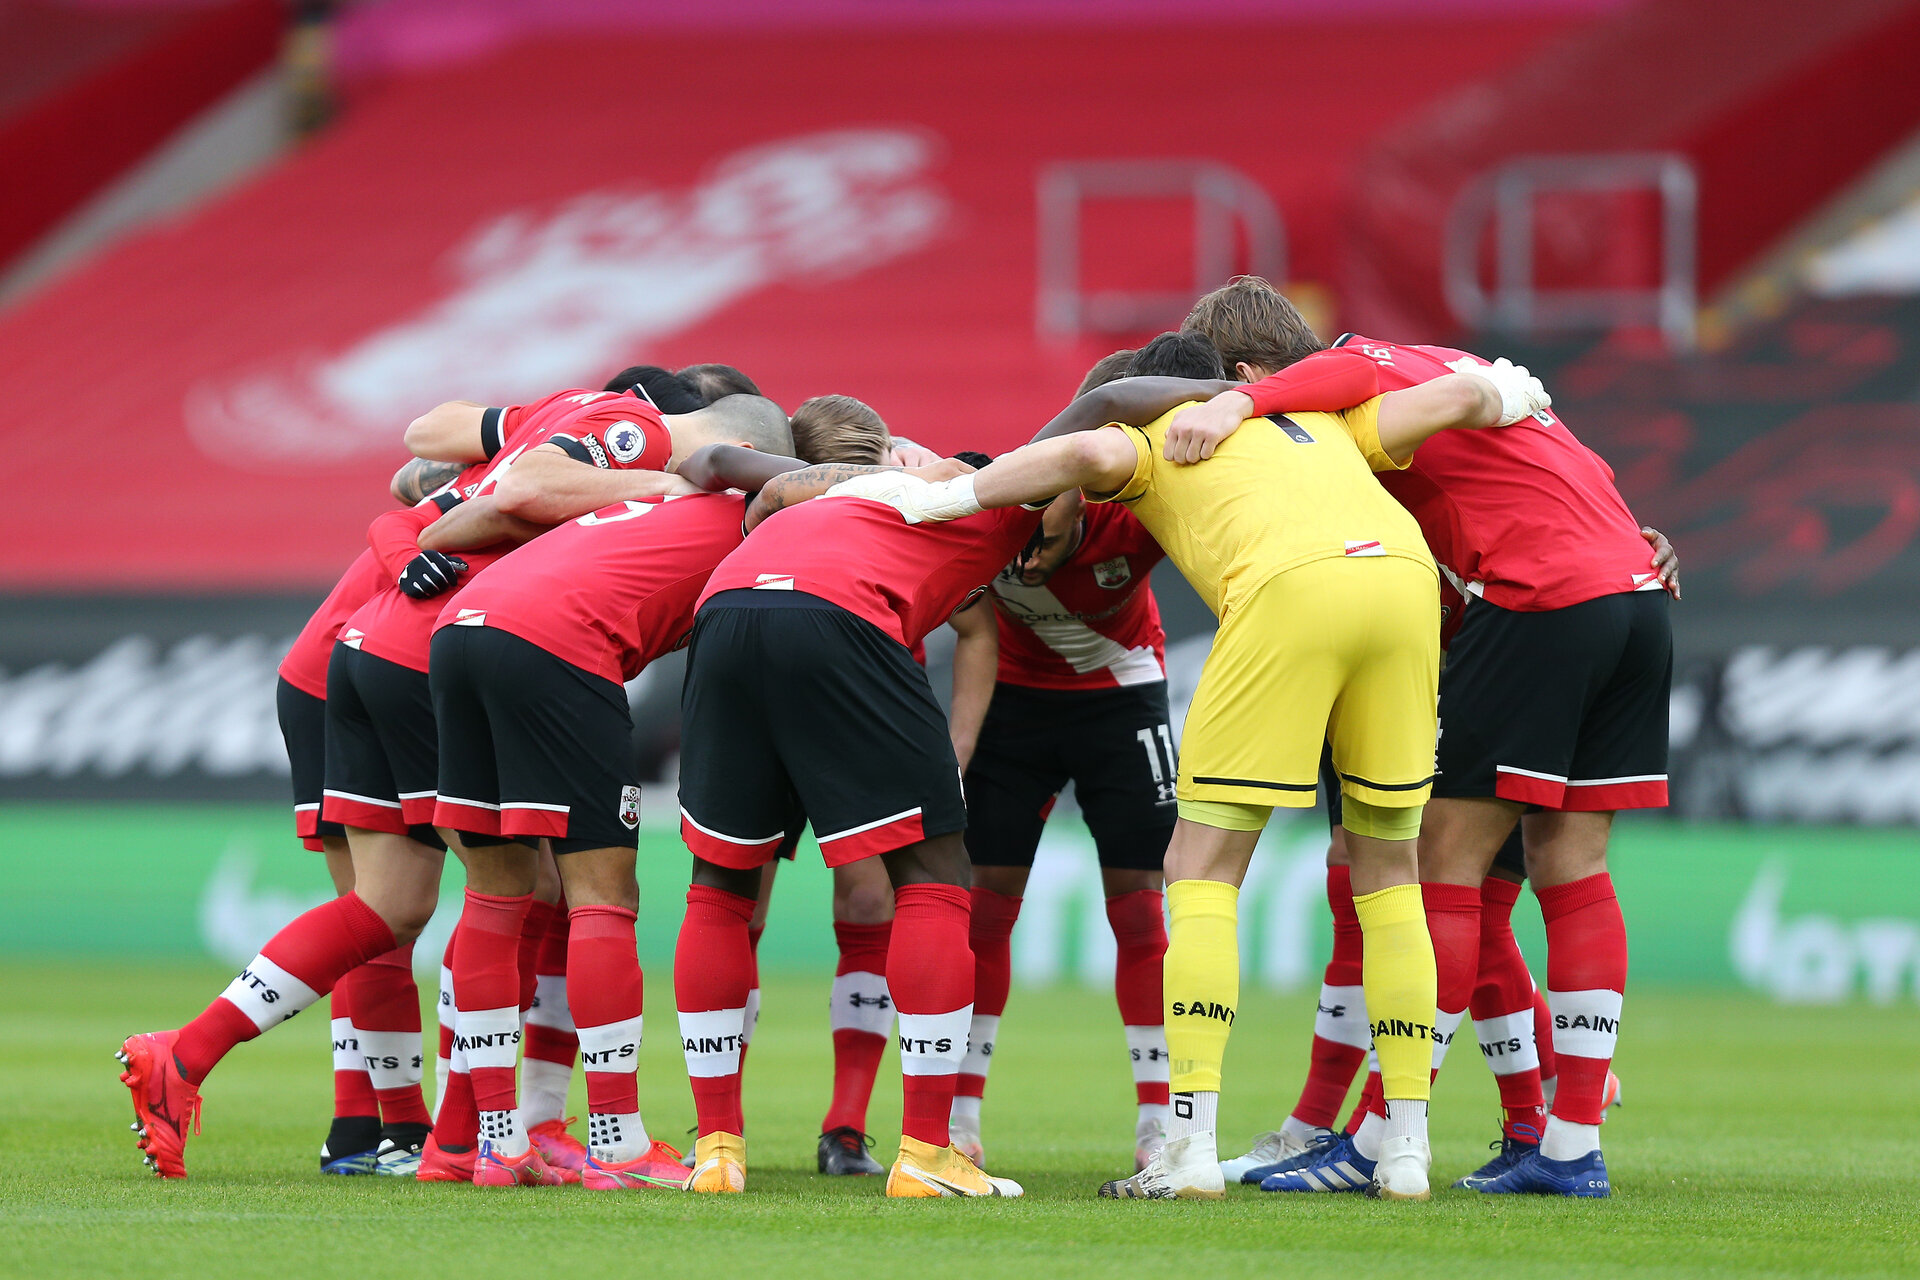 SOUTHAMPTON, ENGLAND - FEBRUARY 20: Southampton players huddle ahead of the Premier League match between Southampton and Chelsea at St Mary's Stadium on February 20, 2021 in Southampton, England. Sporting stadiums around the UK remain under strict restrictions due to the Coronavirus Pandemic as Government social distancing laws prohibit fans inside venues resulting in games being played behind closed doors. (Photo by Matt Watson/Southampton FC via Getty Images)